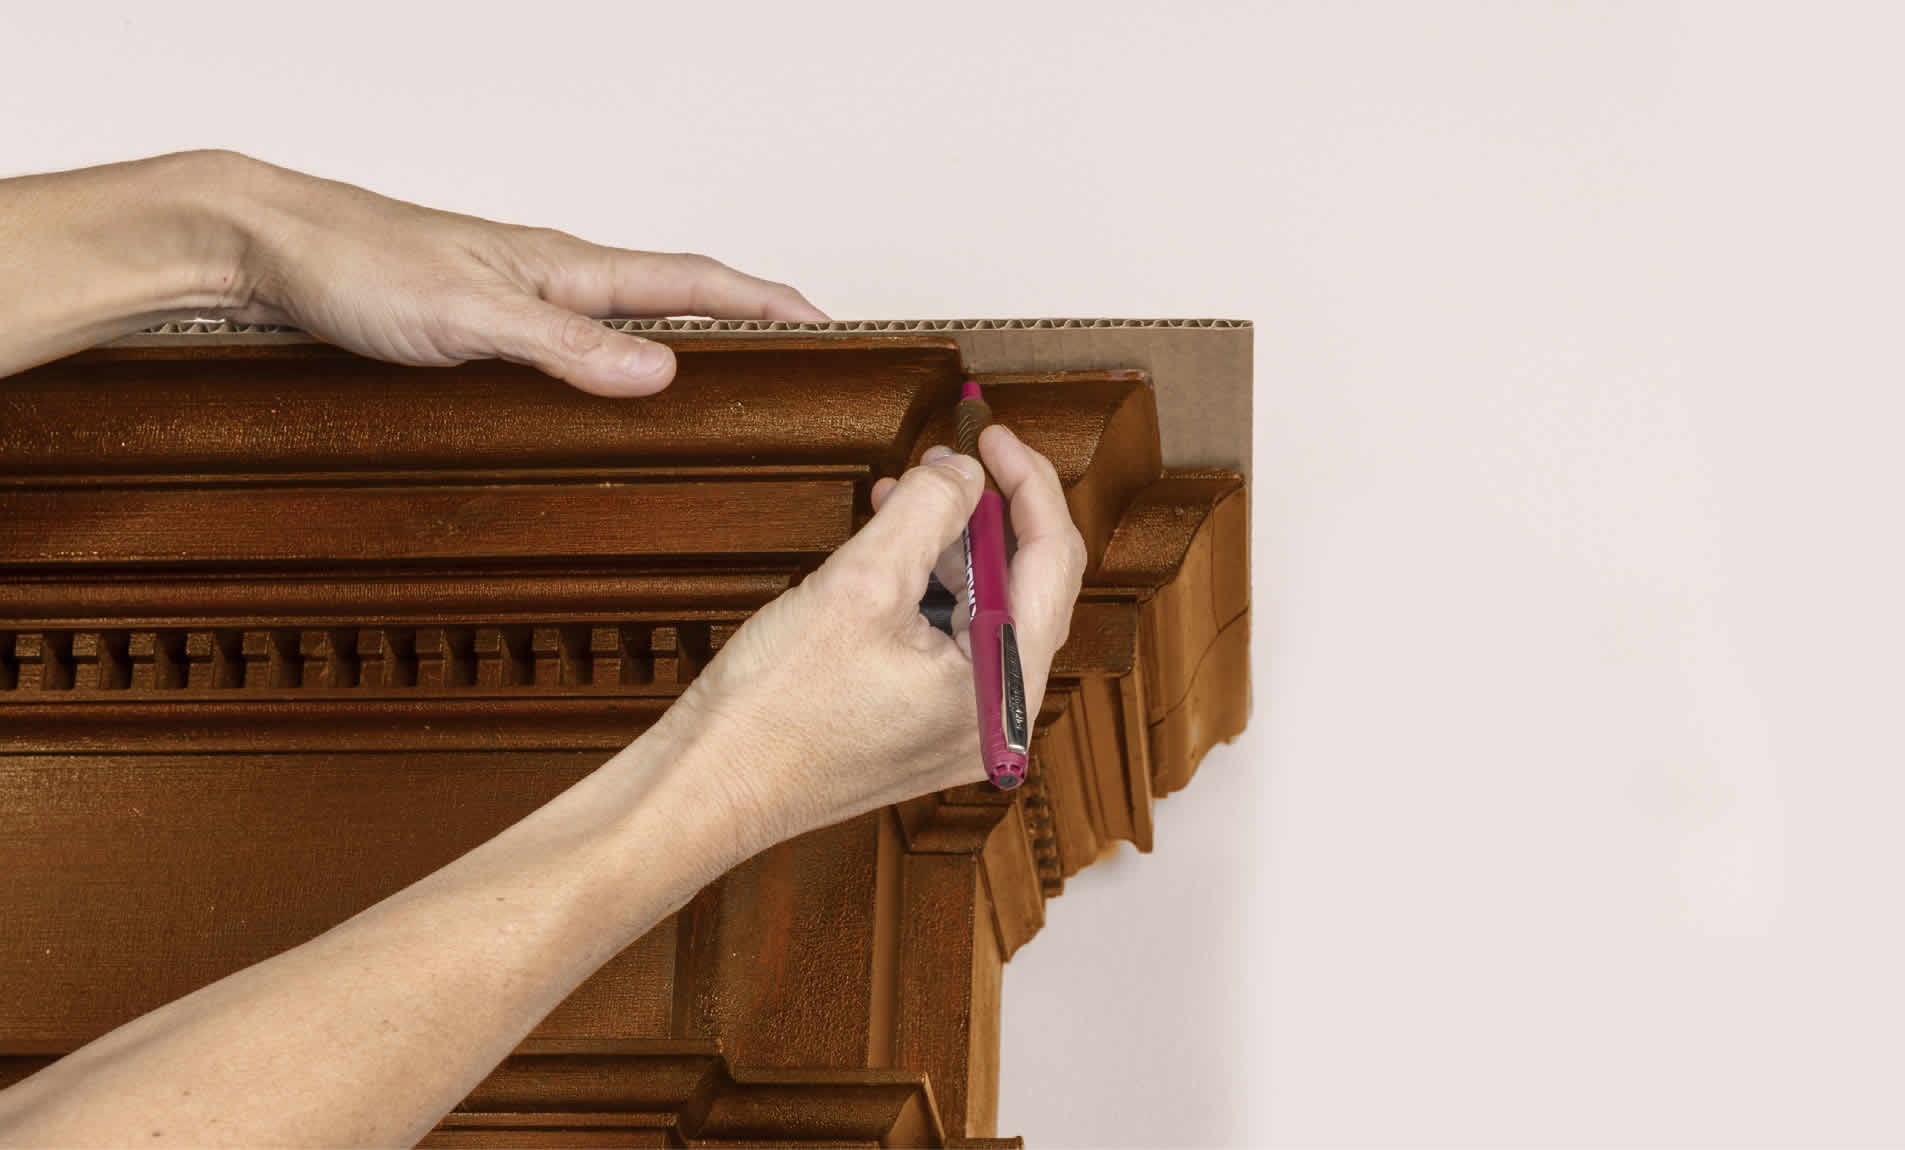 tracing cardboard around a fireplace mantel